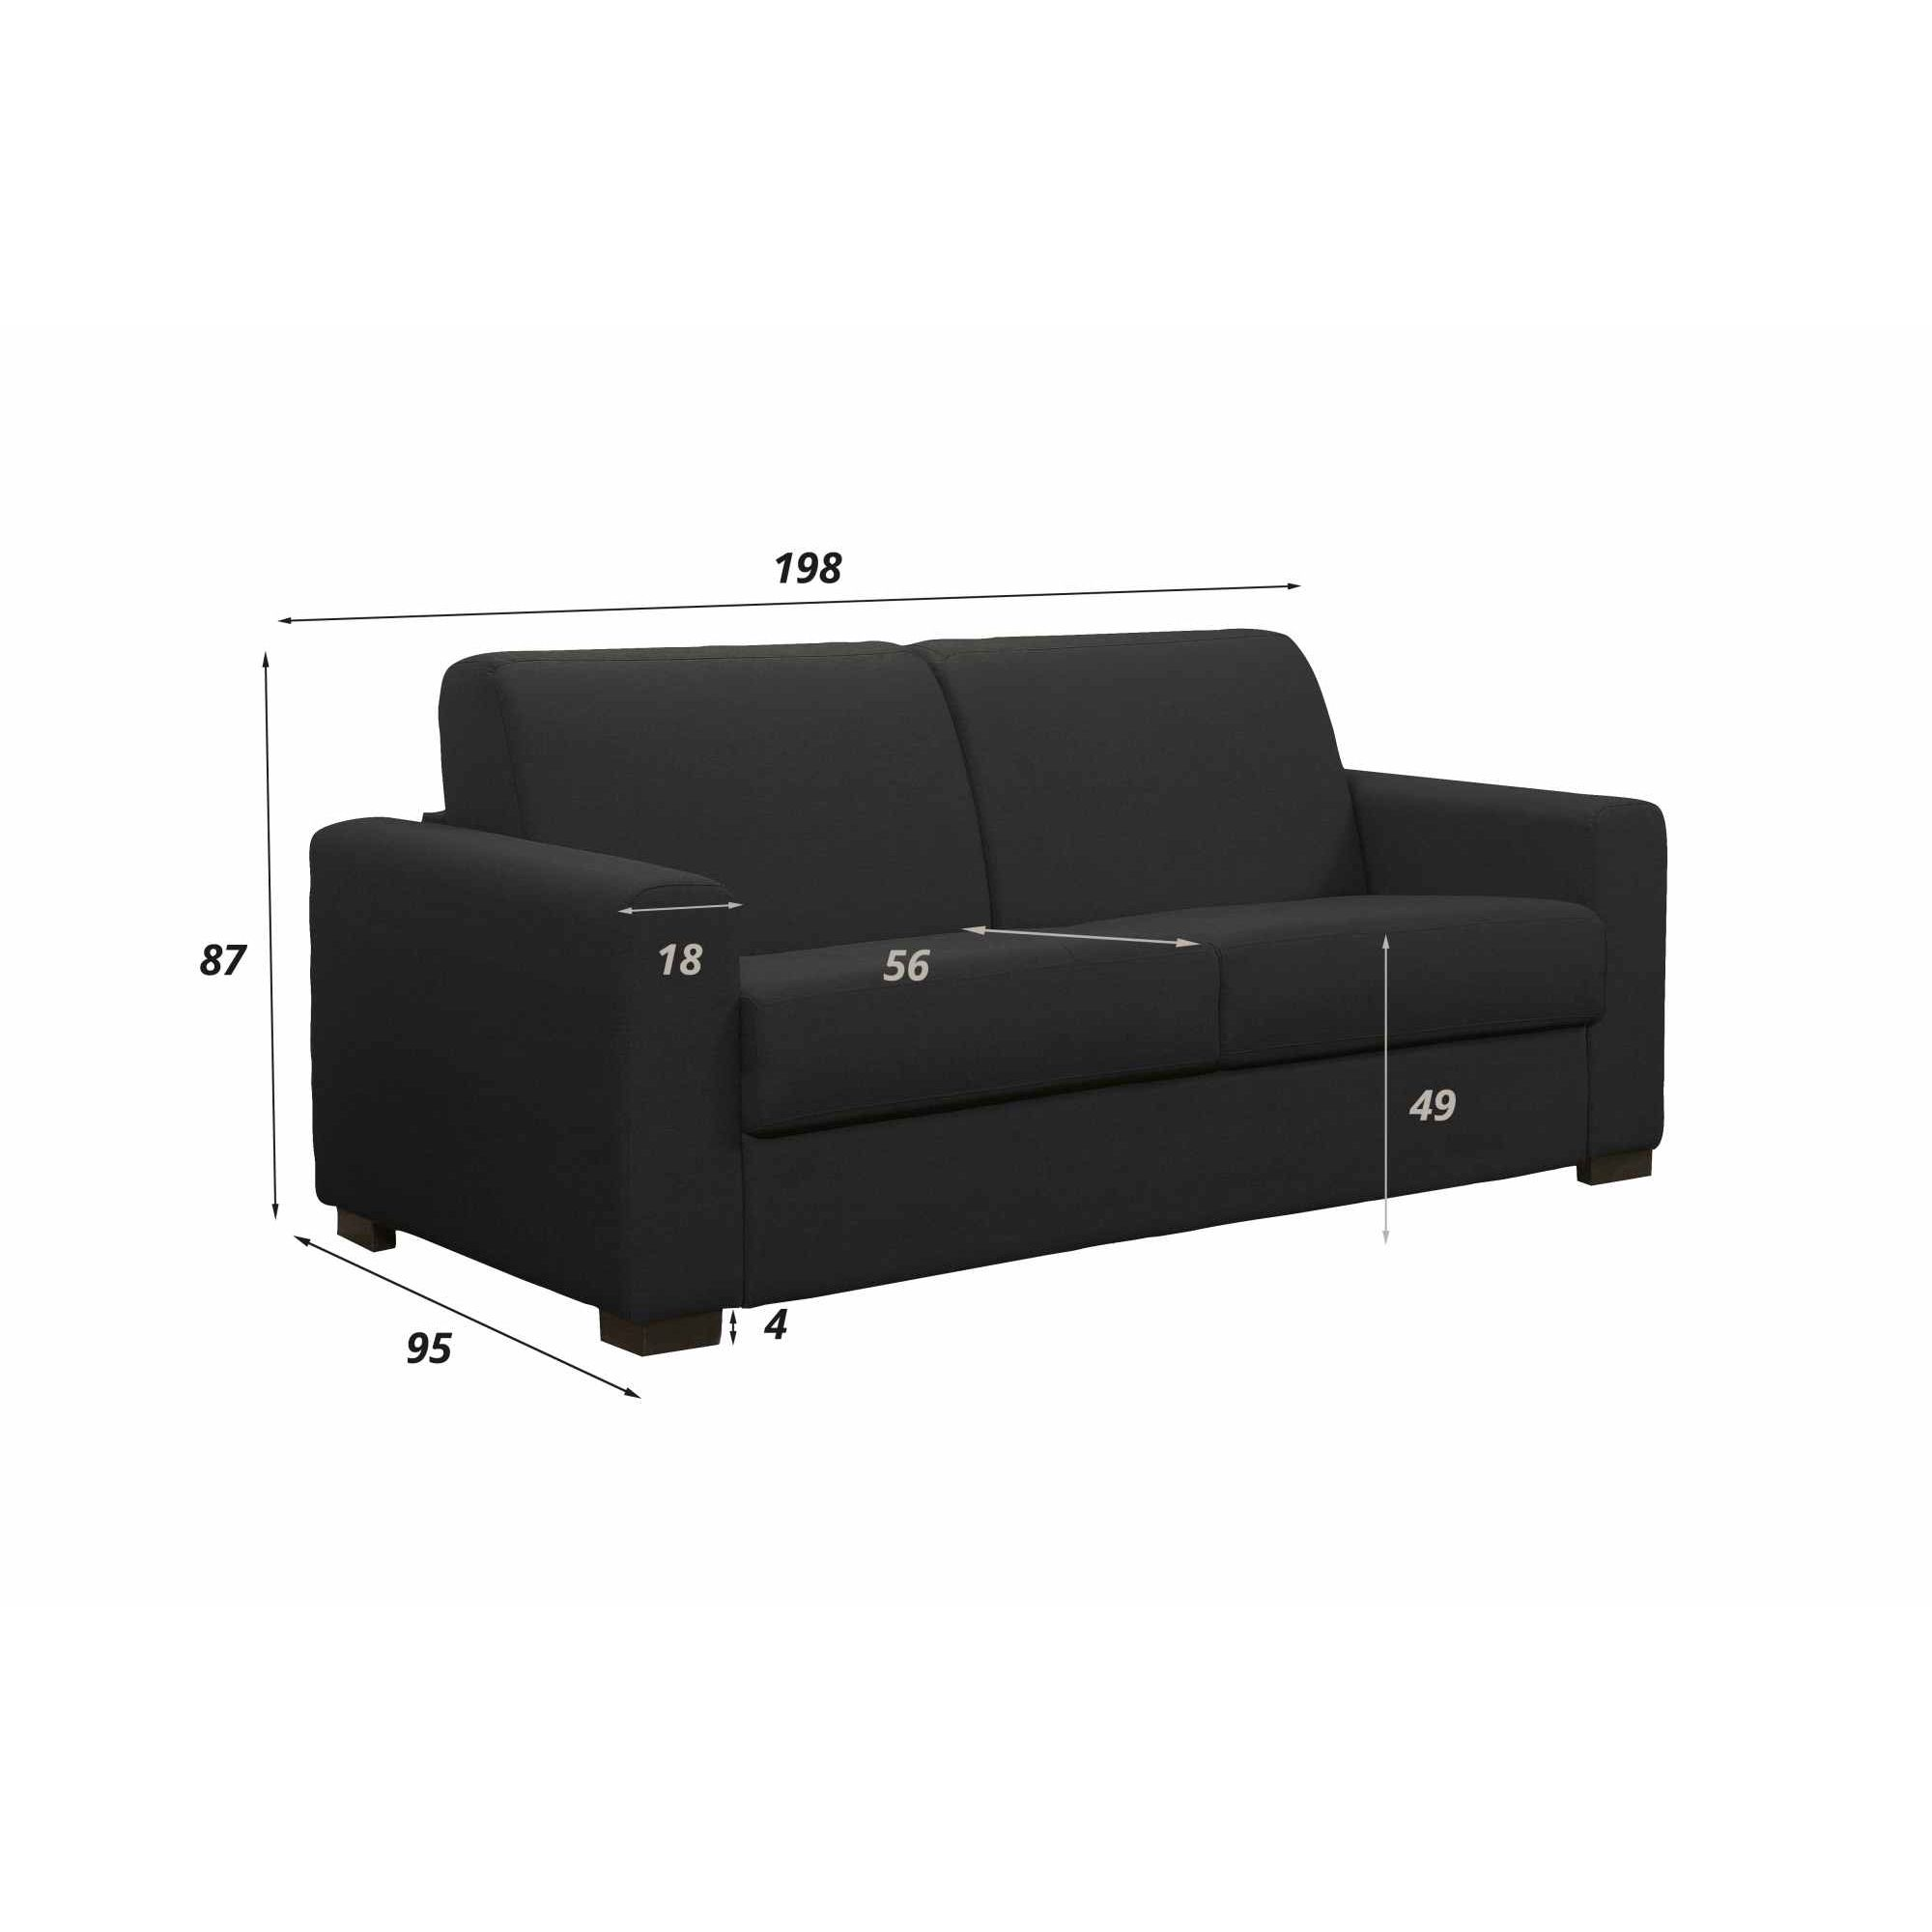 DECO IN PARIS Canape convertible 3 places louna en tissu